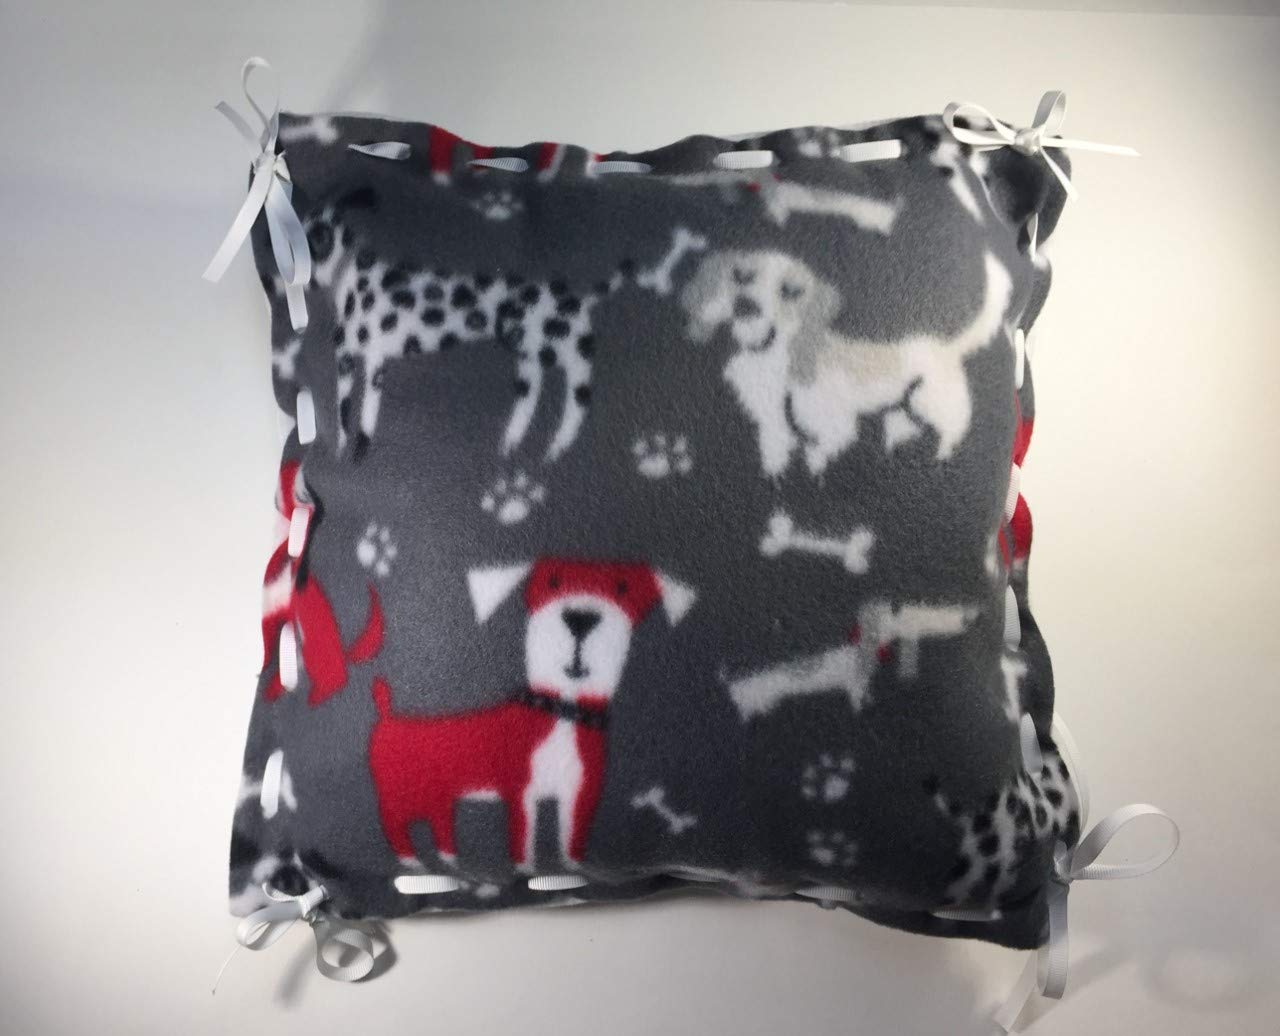 Elderly red Disabled Gray Child Friendly Simple Lacing Insert Included White Dog Pattern No Knotting Make Your Own Fleece Pillow Kit Activity for Blind Dementia//Alzheimer